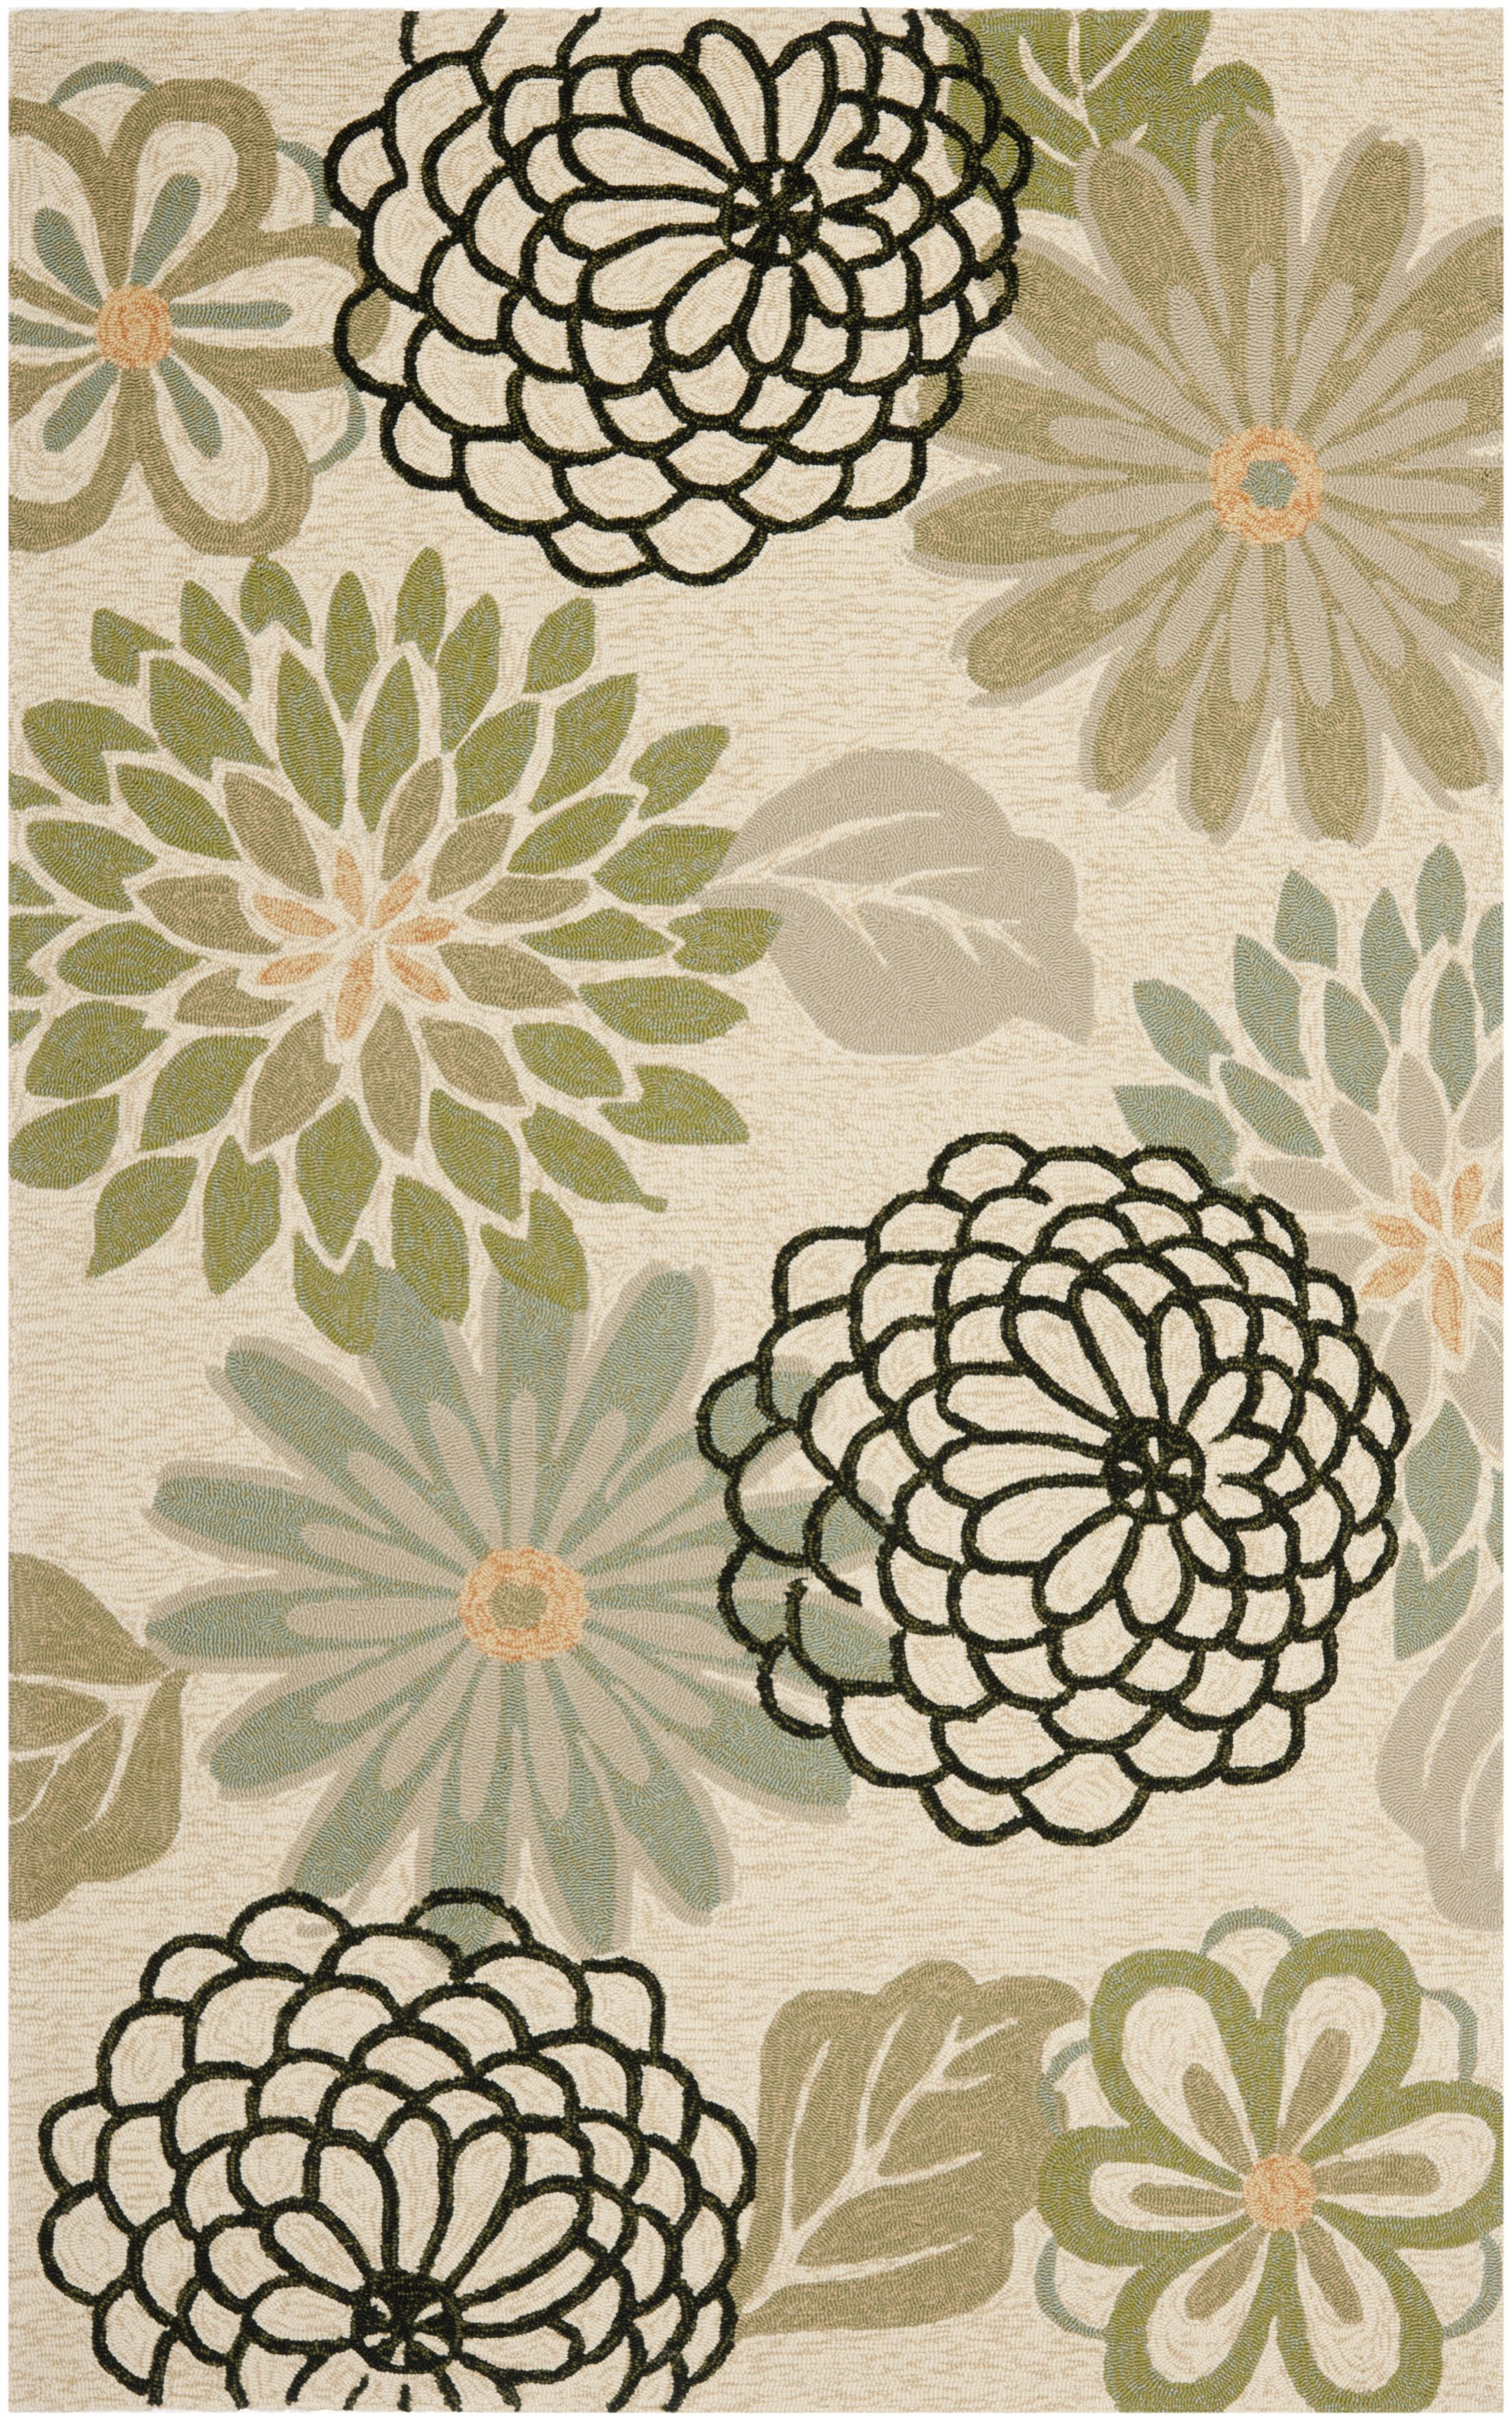 Hayes Beige/Green Indoor/Outdoor Area Rug Rug Size: Rectangle 5' x 7'